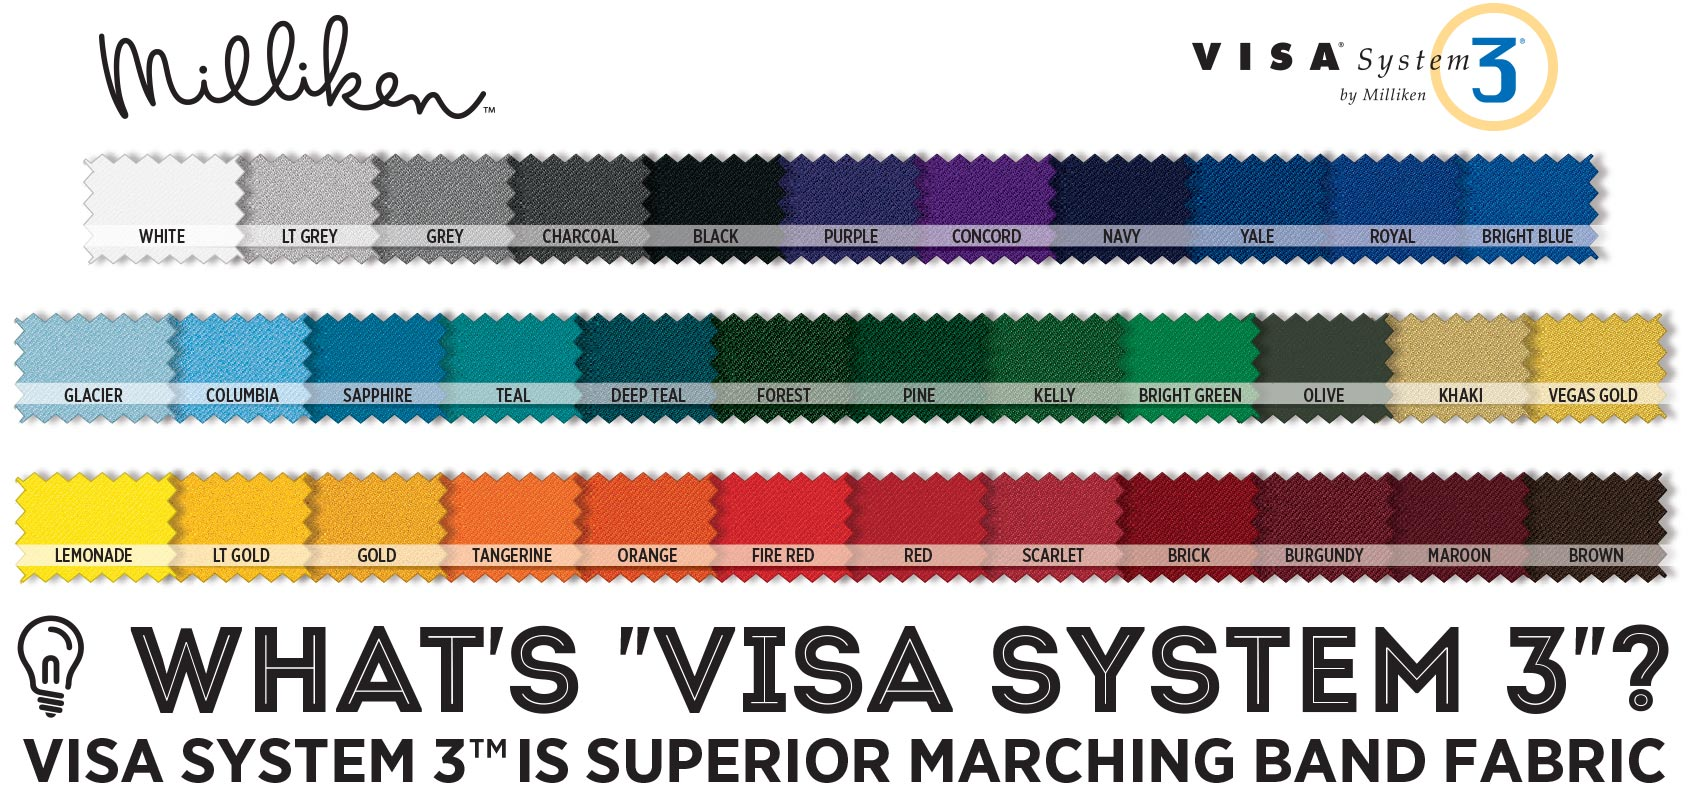 WHAT'S VISA SYSTEM 3? VISA SYSTEM 3 IS SUPERIOR MARCHING BAND FABRIC